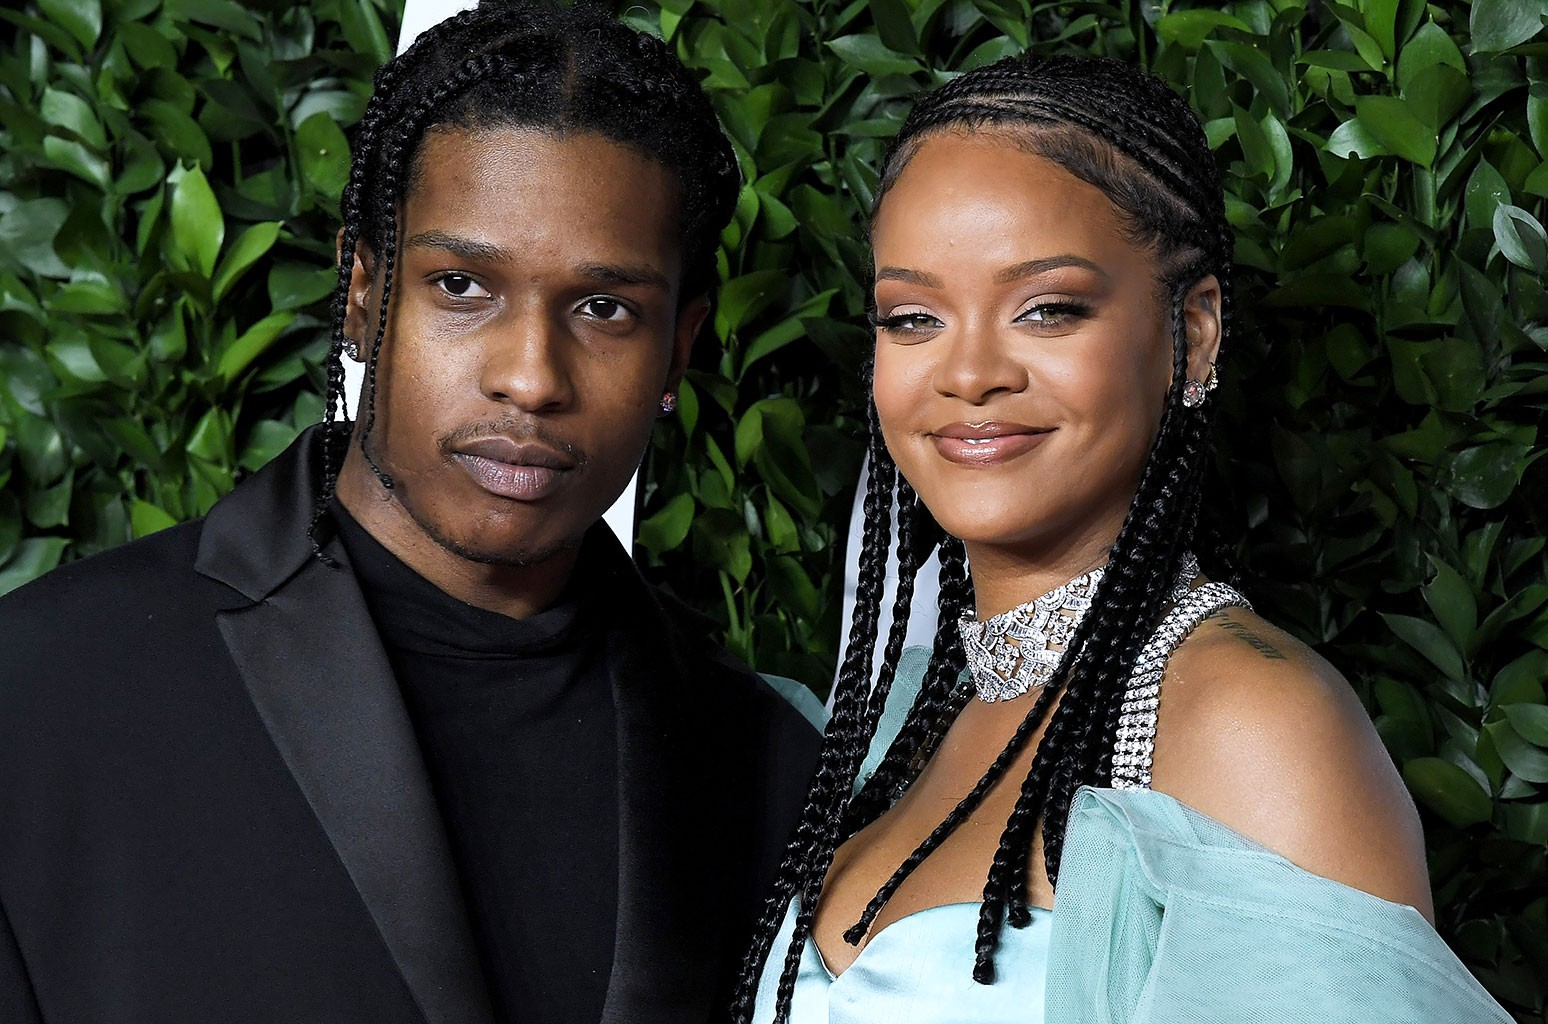 """""""asap-rocky-gushes-over-love-of-his-life-rihanna-in-rare-interview-says-shes-the-one-and-more"""""""